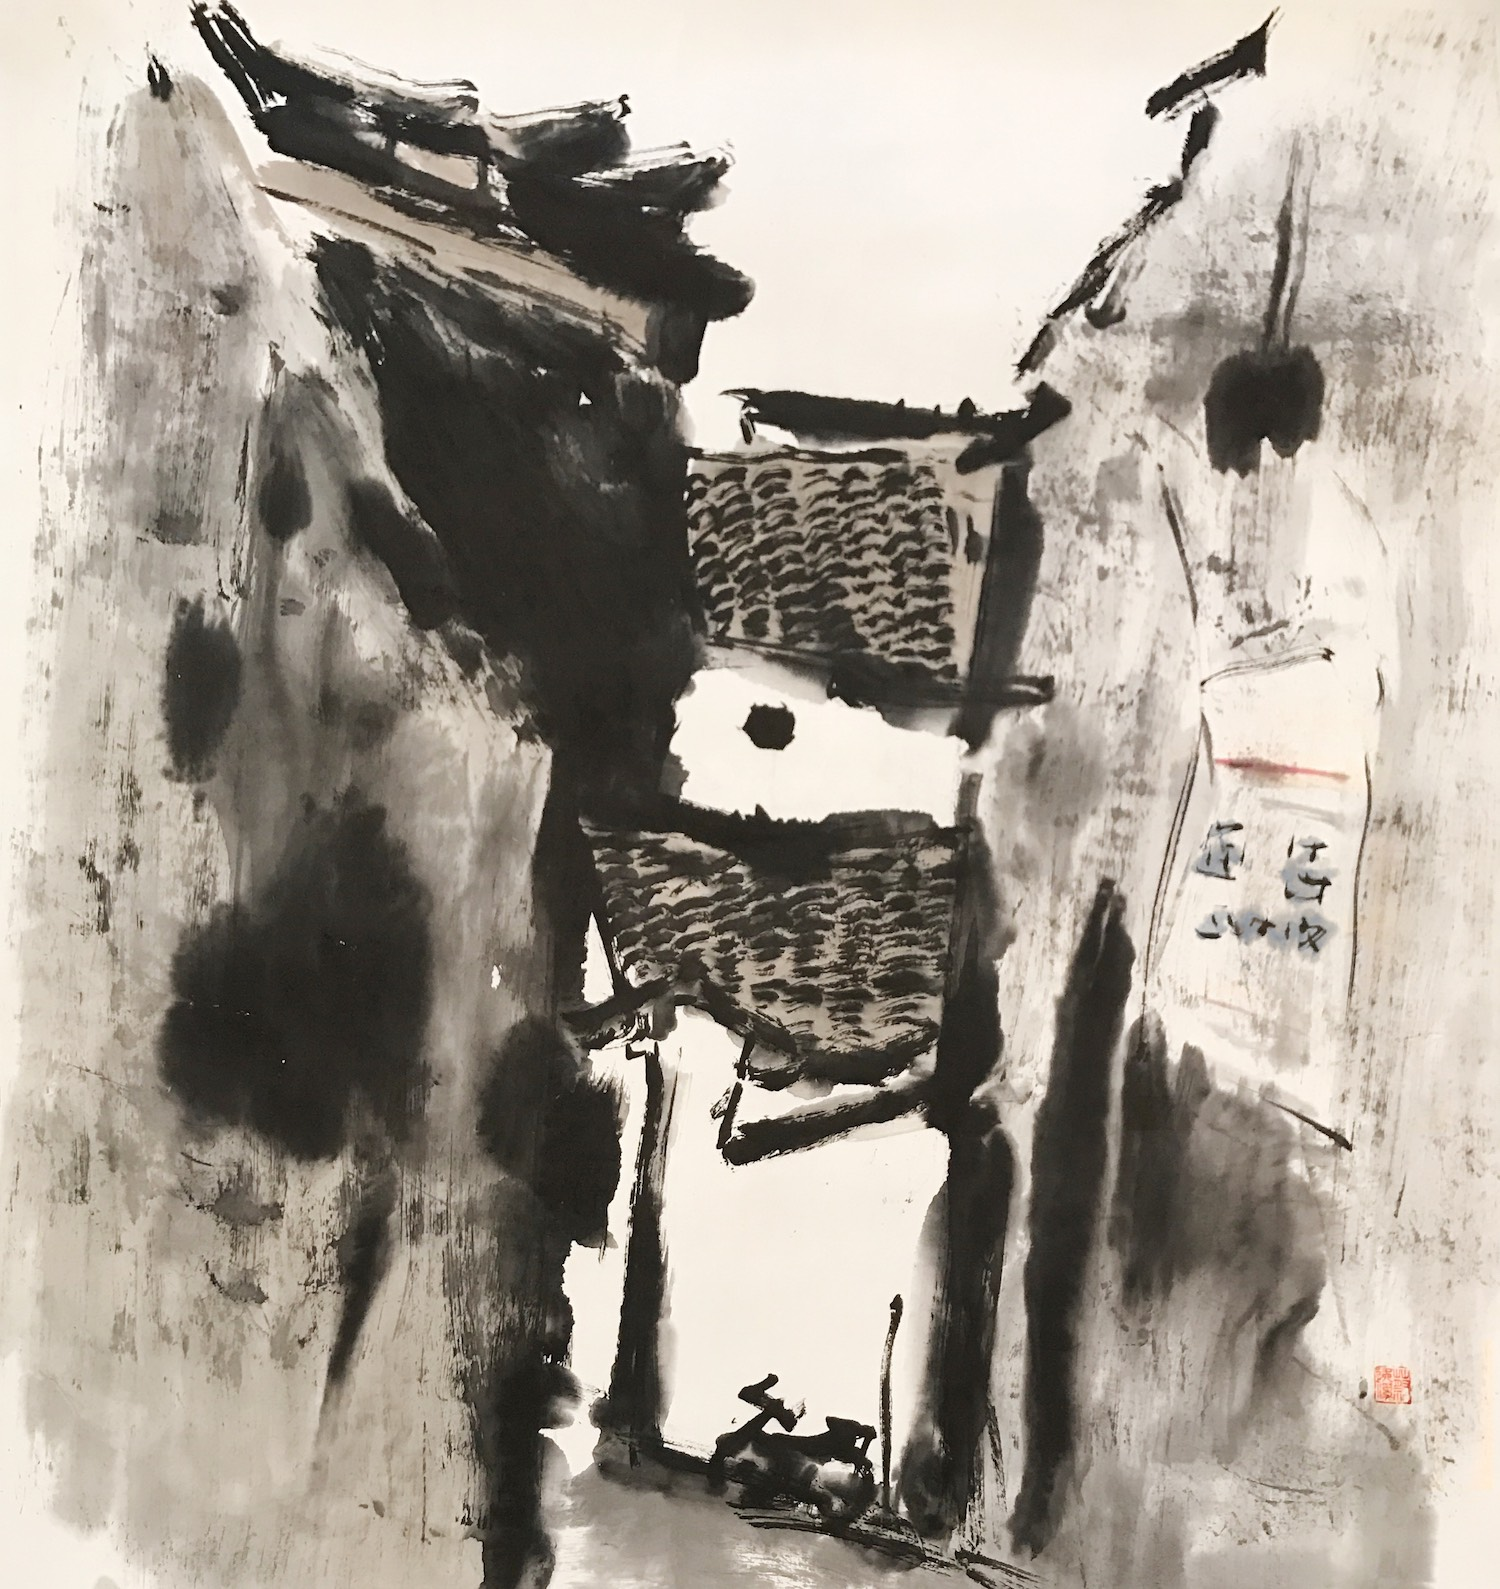 Chua Ek Kay, 'A Quiet Singapore Afternoon', 2006, chinese ink on paper, 97 x 90cm. Image courtesy of Art Agenda S.E.A.